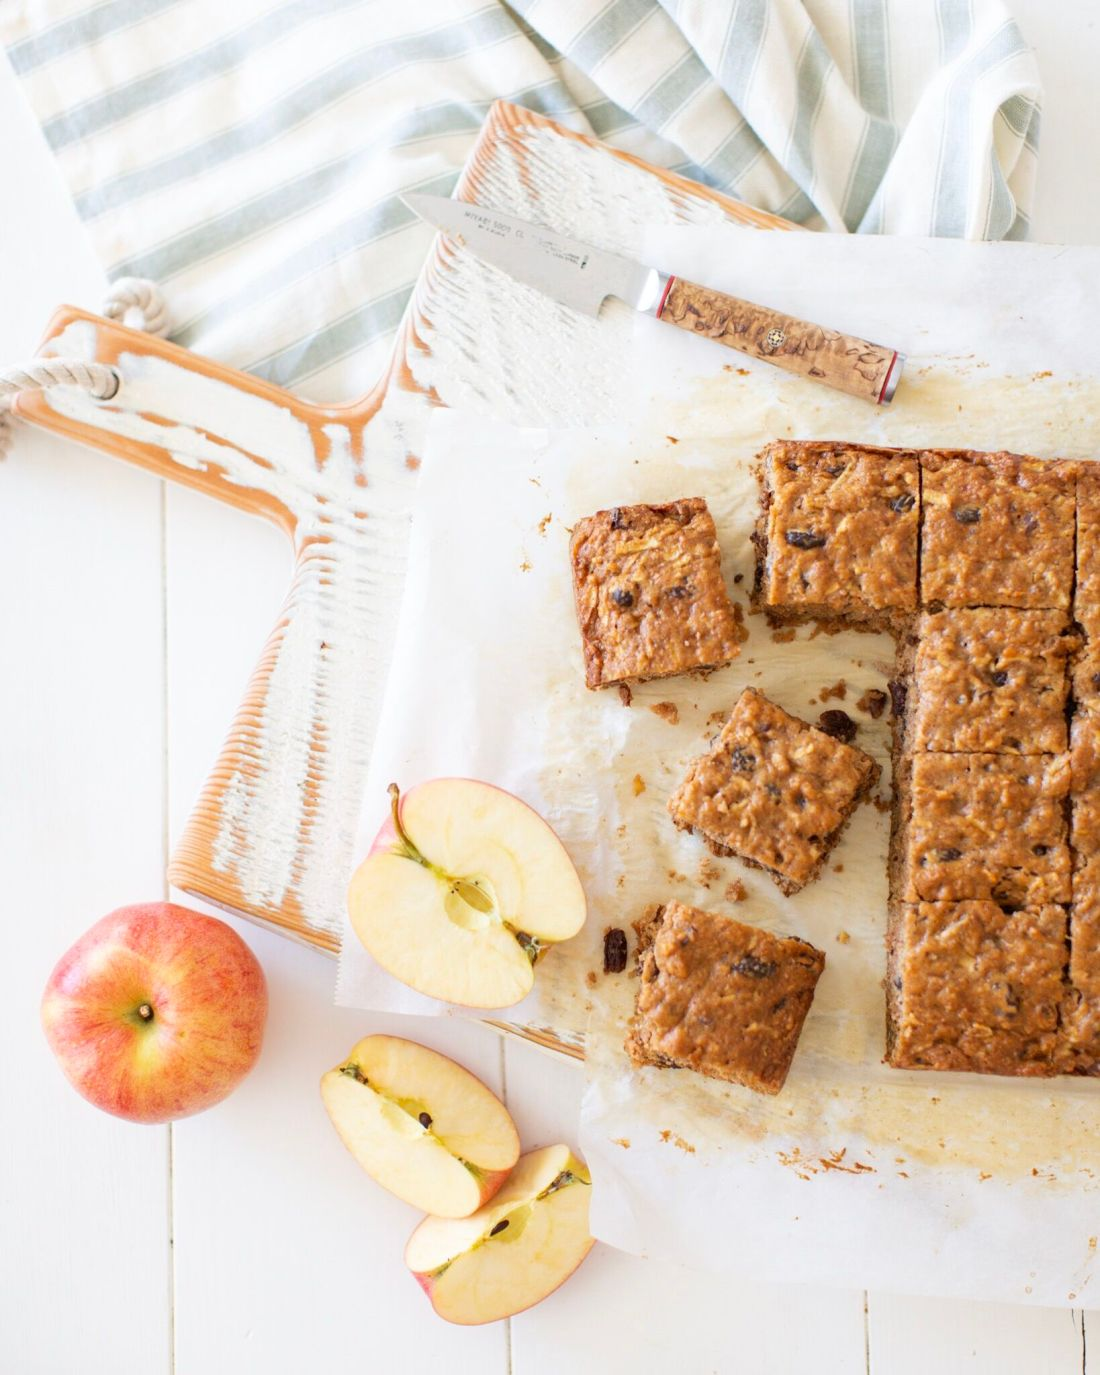 Okanagan Apple Cake: moist and filled with warm spice